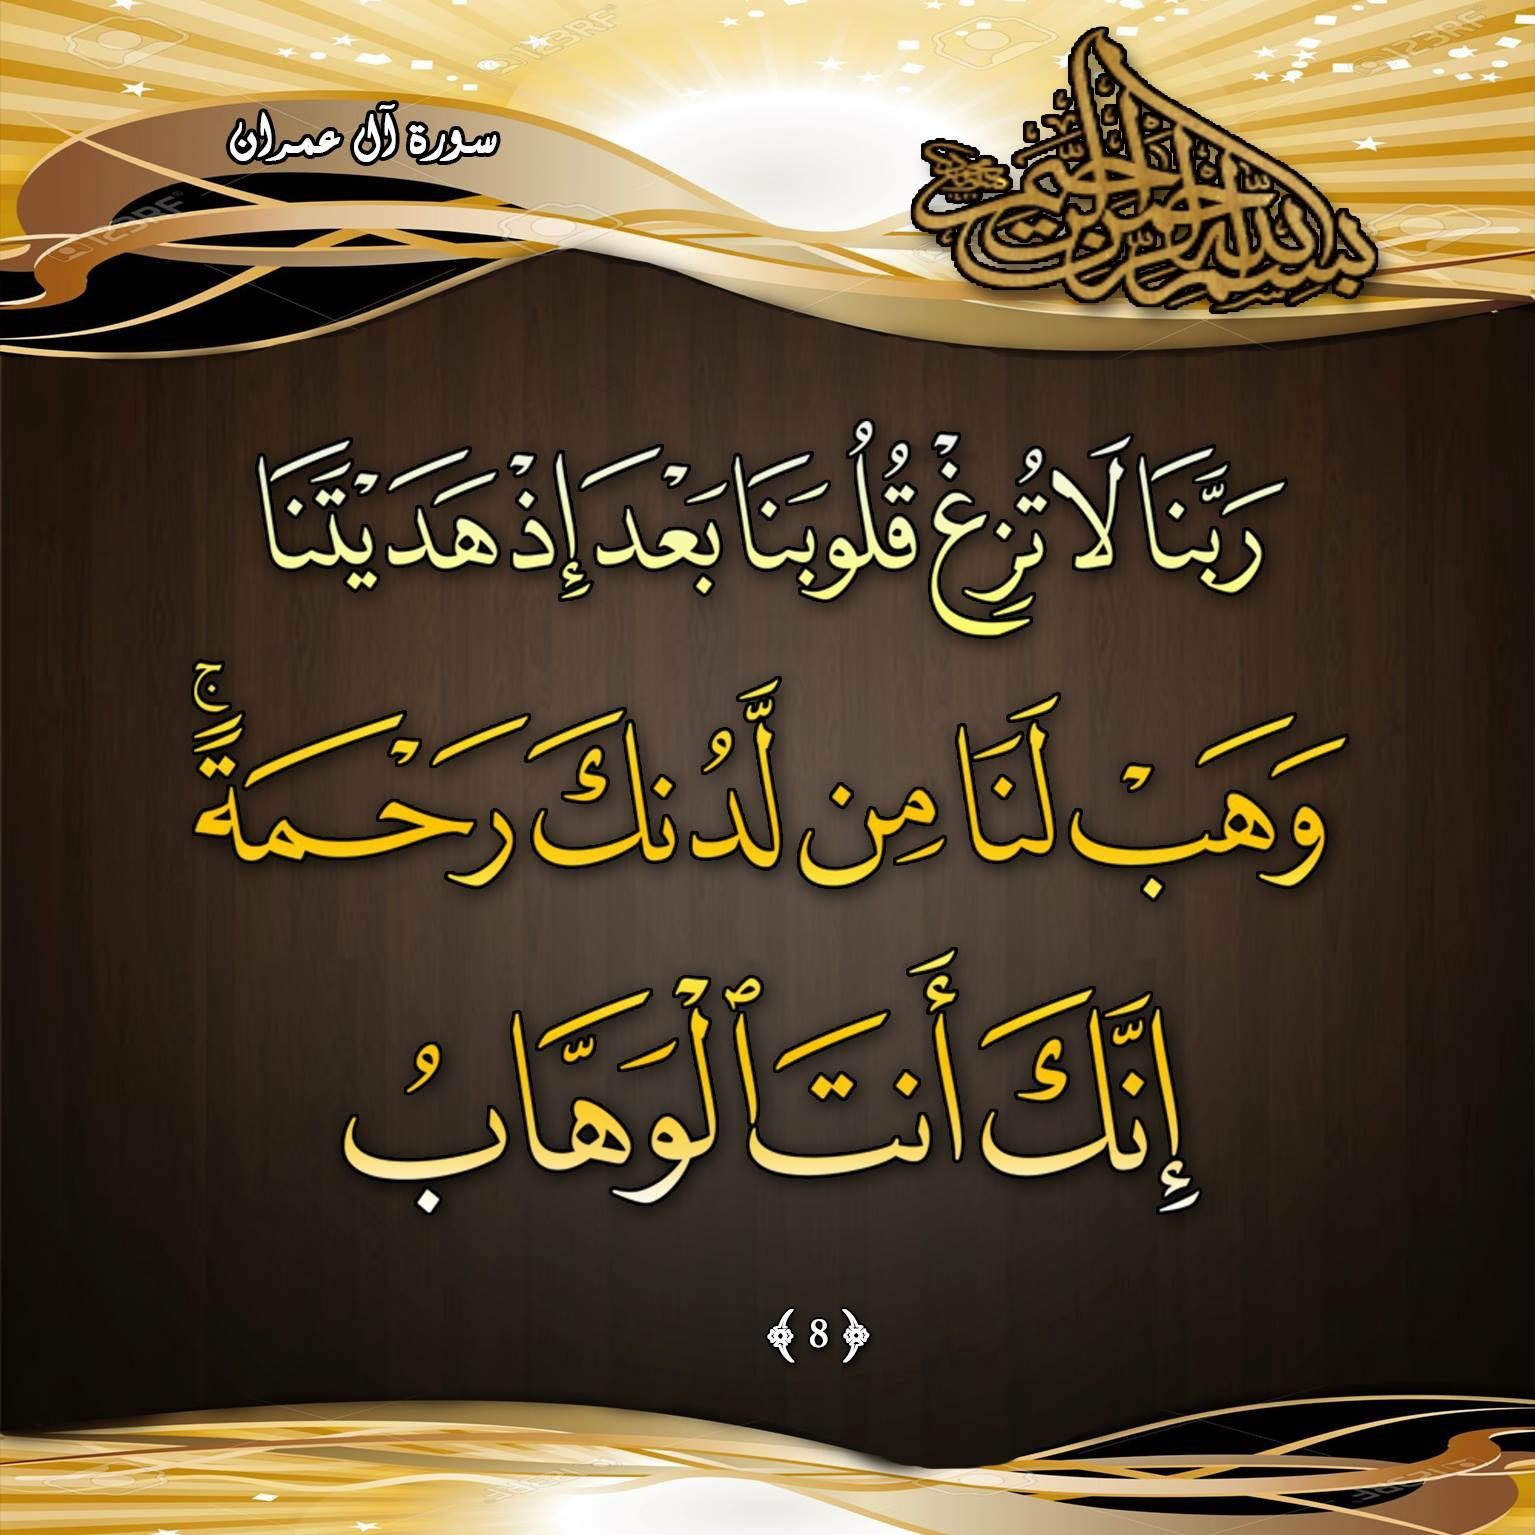 Pin By Khaled Bahnasawy On ٣ سورة آل عمران Quran Verses Arabic Calligraphy Quotes